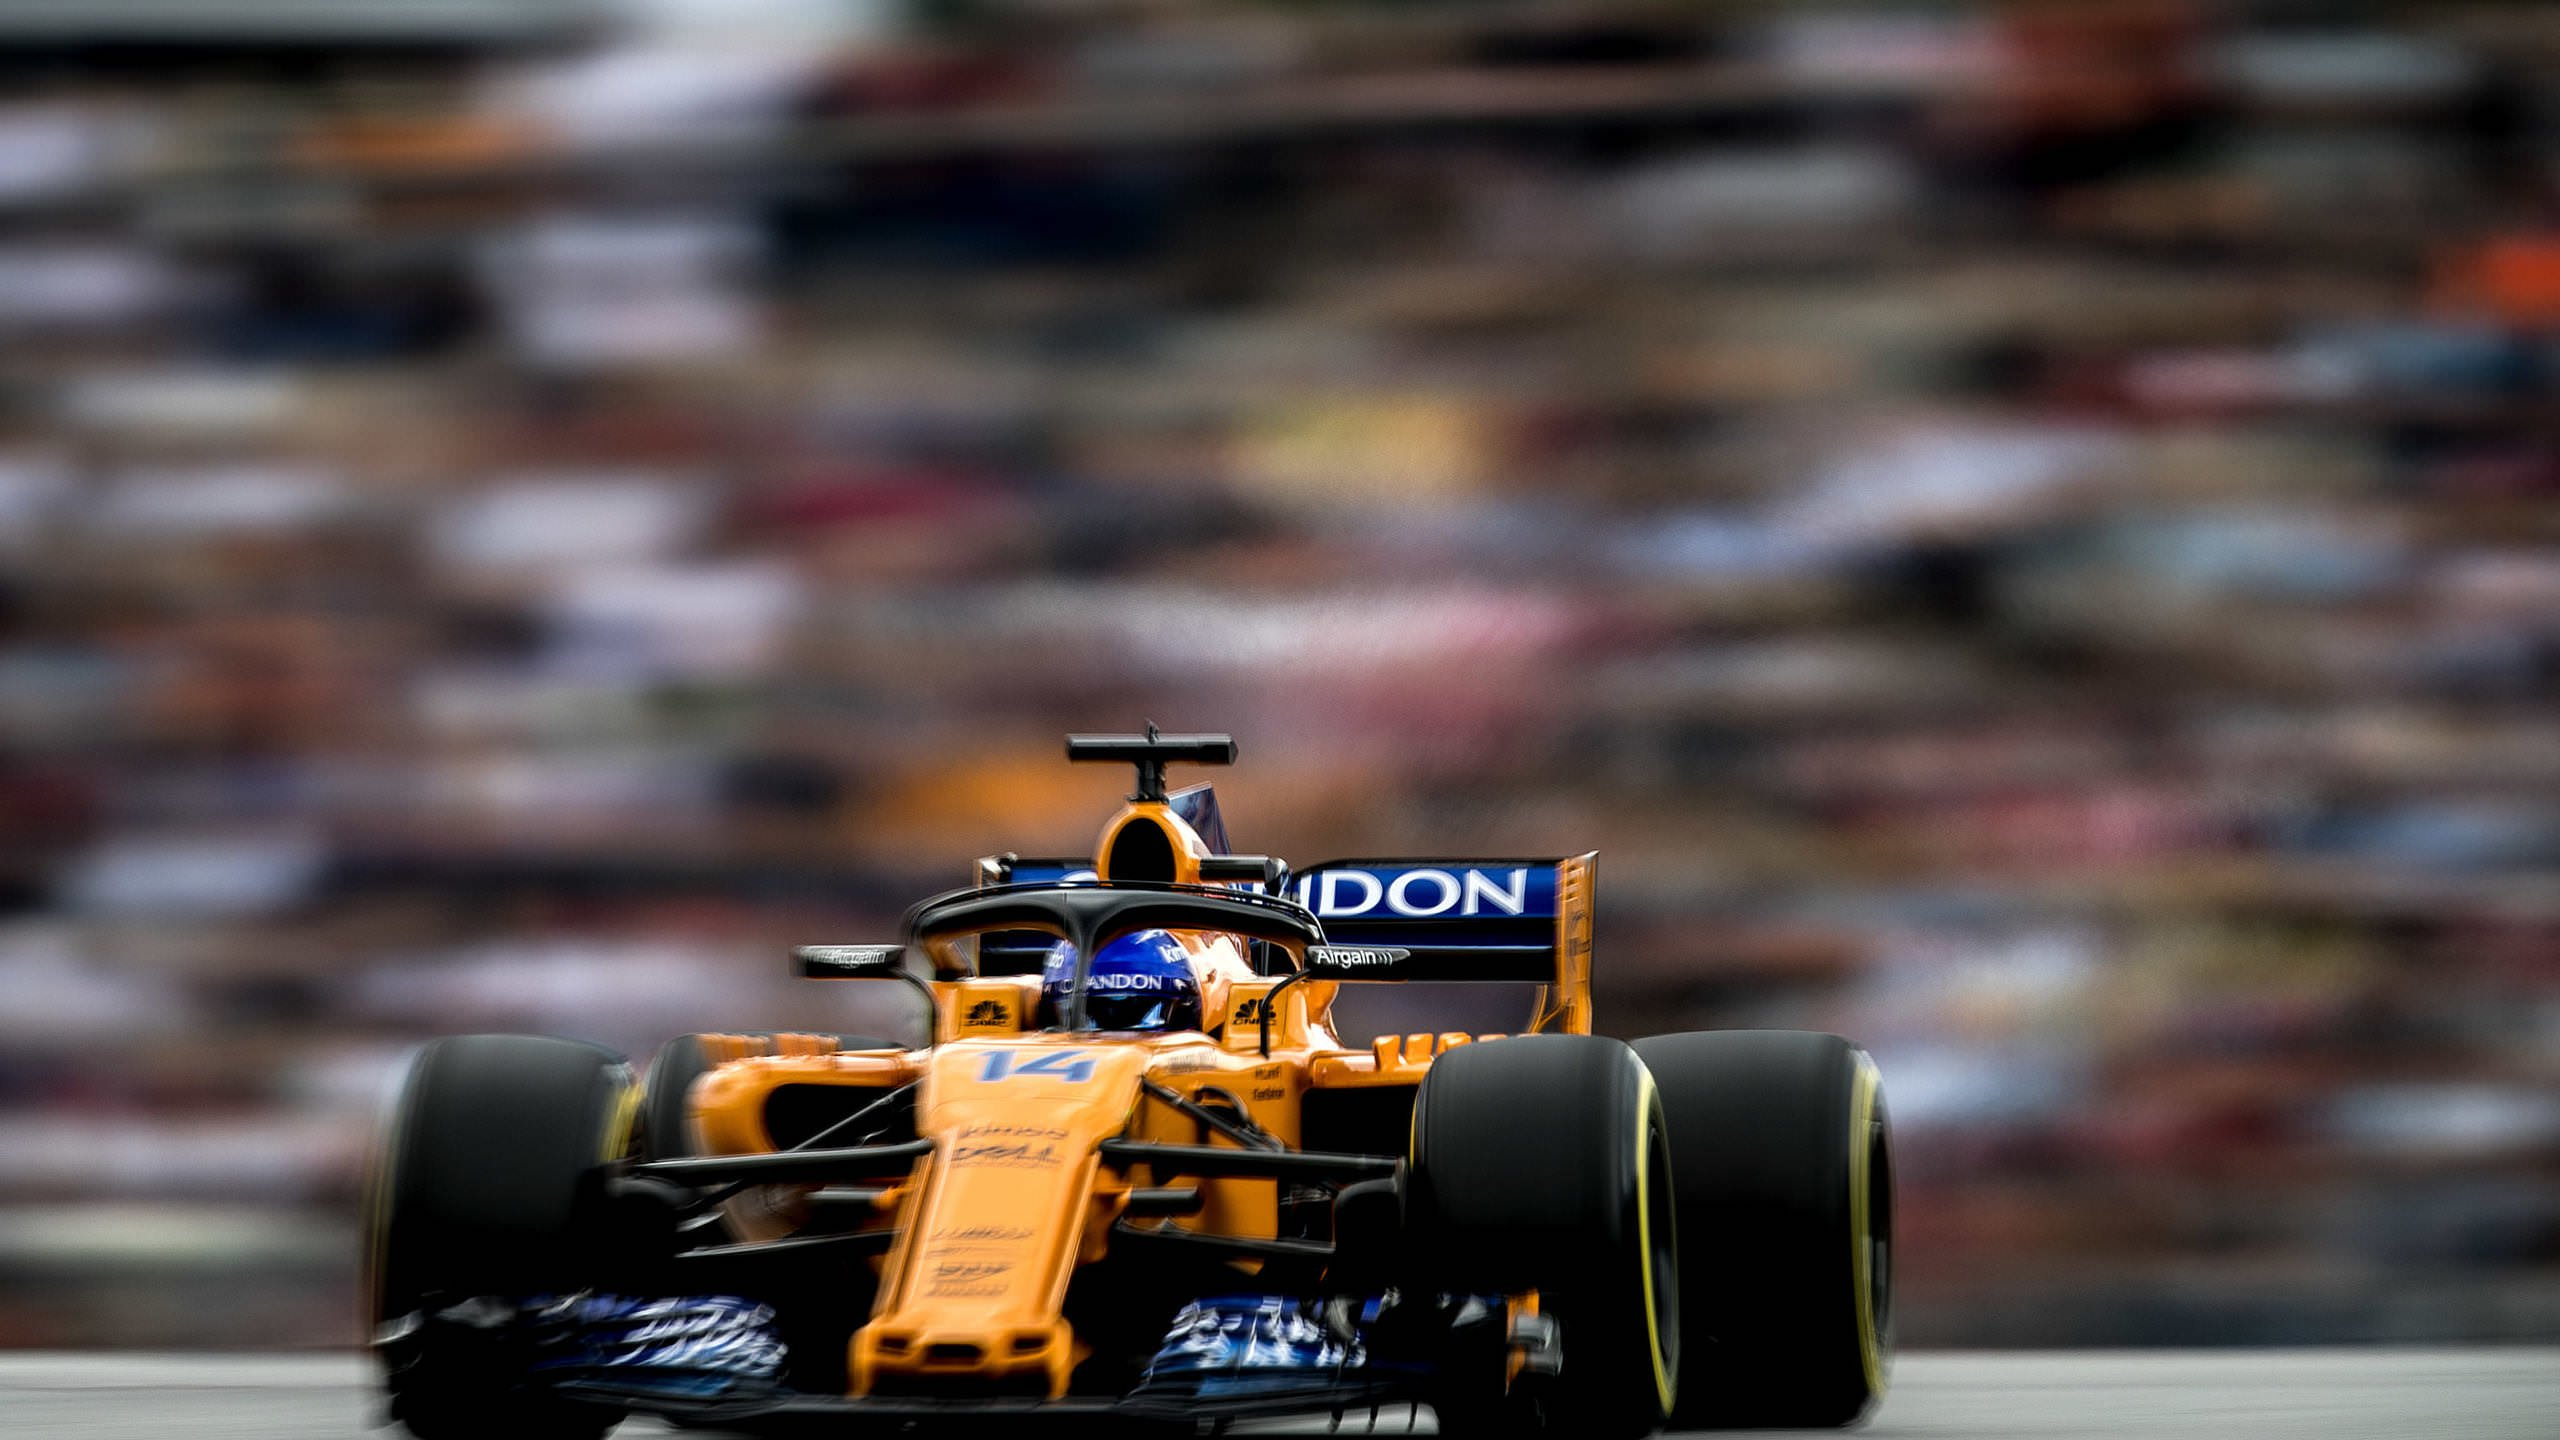 Austrian Gp Fernando Alonso Hd Wallpaper